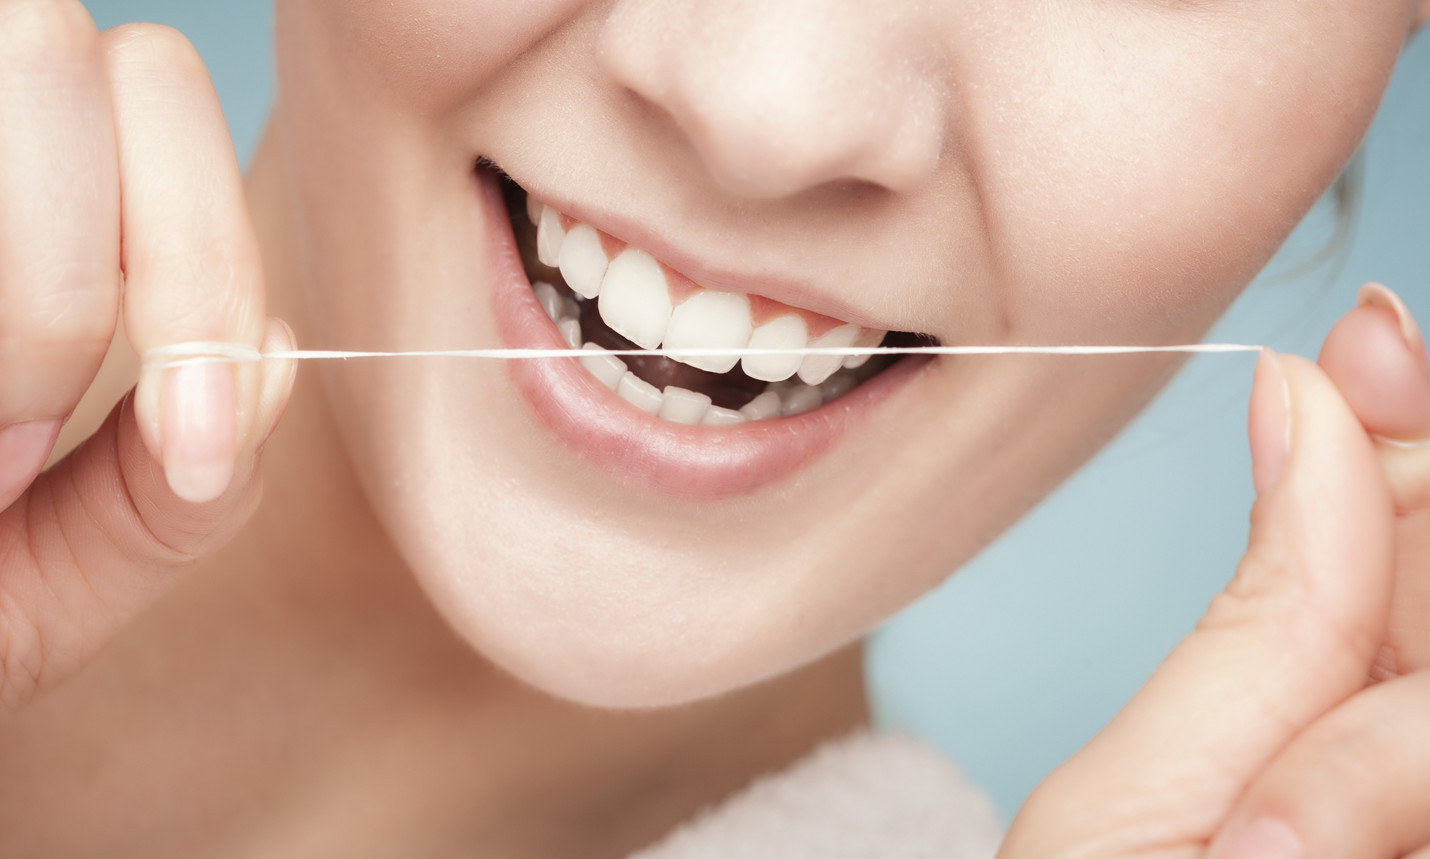 What are the Healthy Habits for Dental Care | HealthSoul